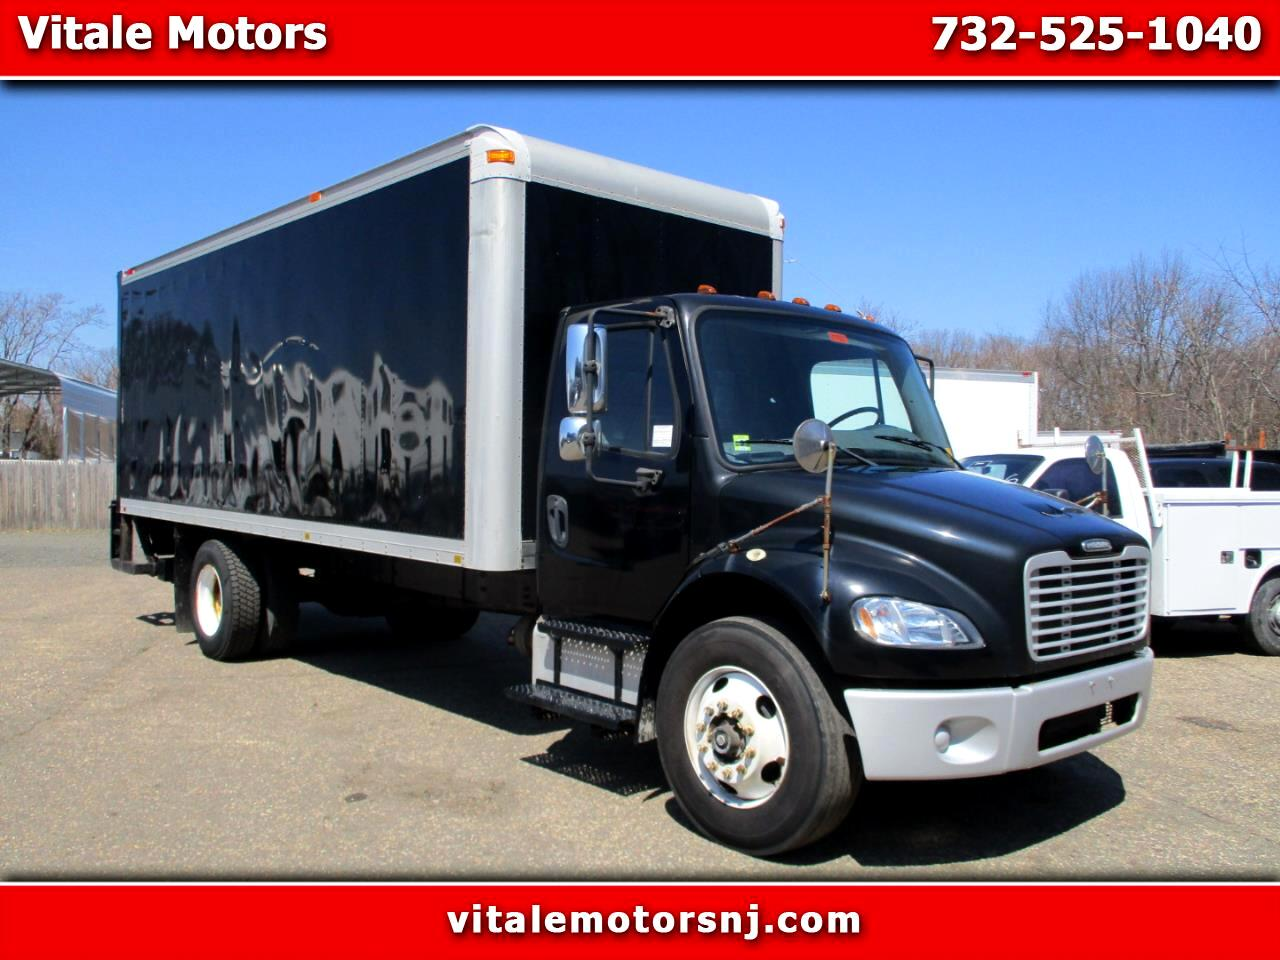 2007 Freightliner M2 106 22 FOOT BOX TRUCK W/ LIFTGATE